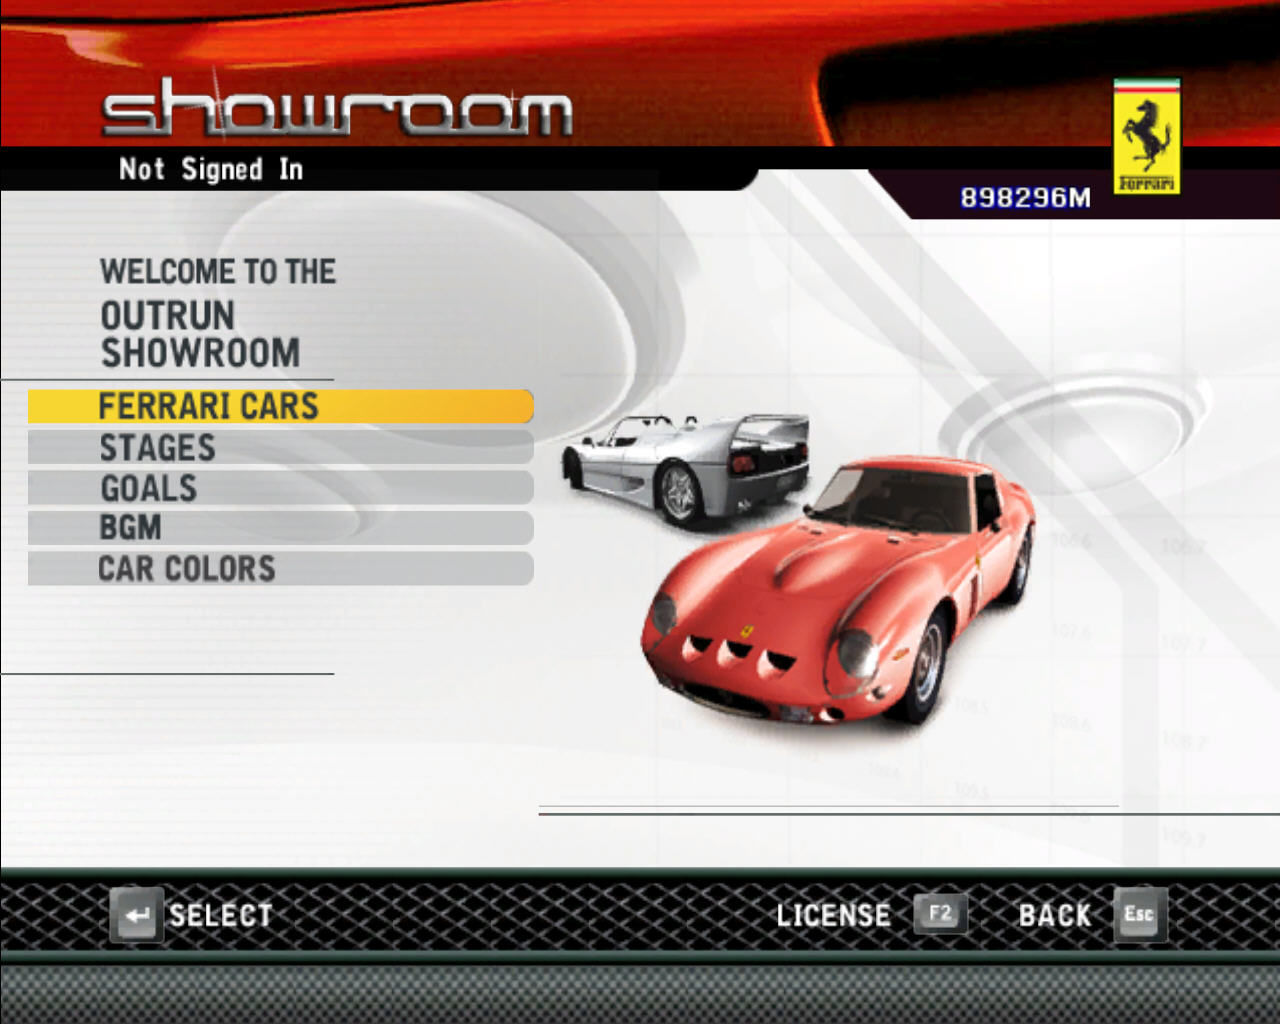 OutRun 2006: Coast 2 Coast Windows In the showroom you can unlock cars, stages, goals, music and car colors.